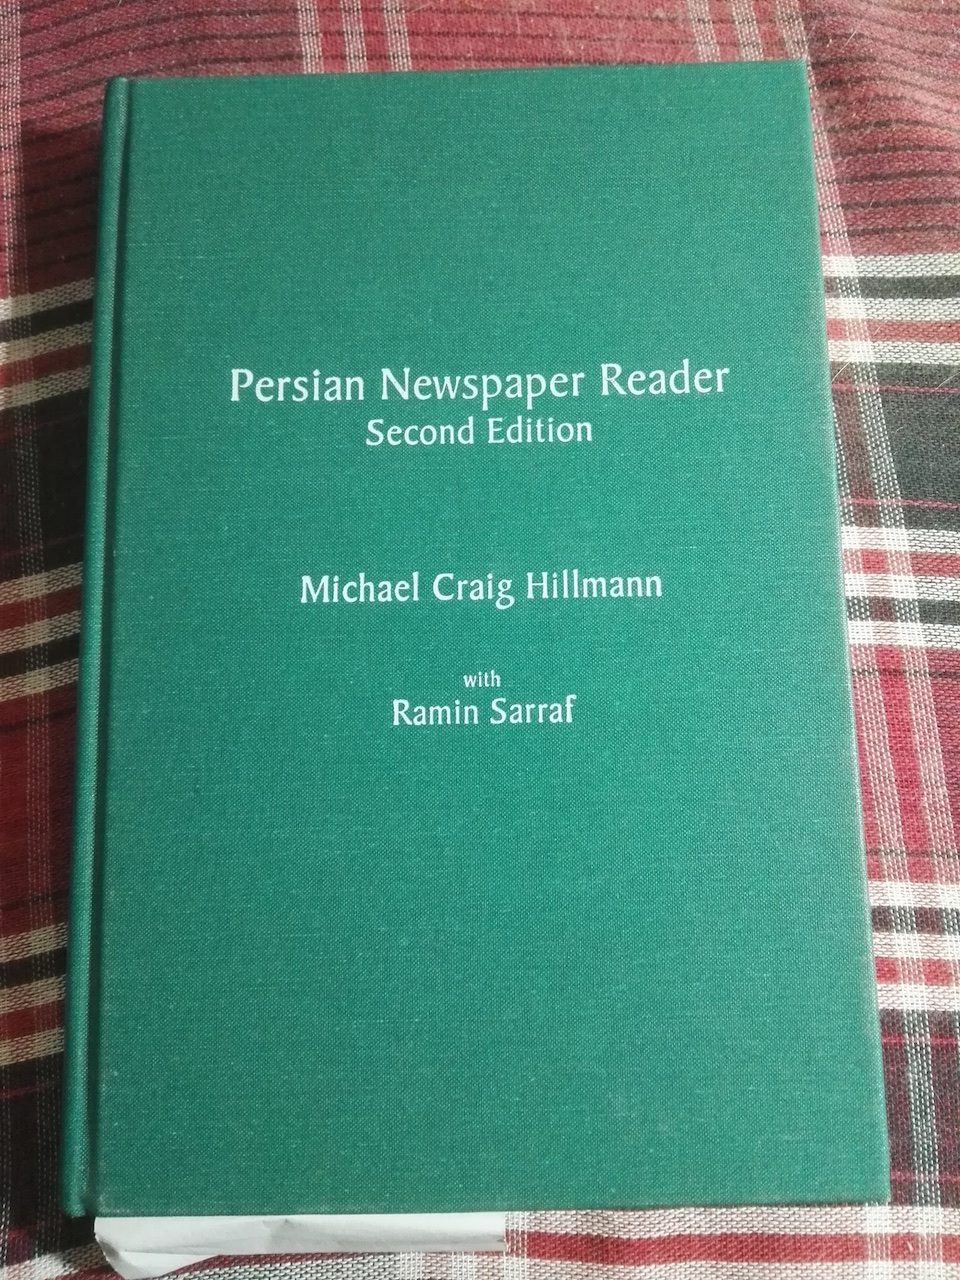 Michael Craig Hillmann - Persian Newspaper Reader